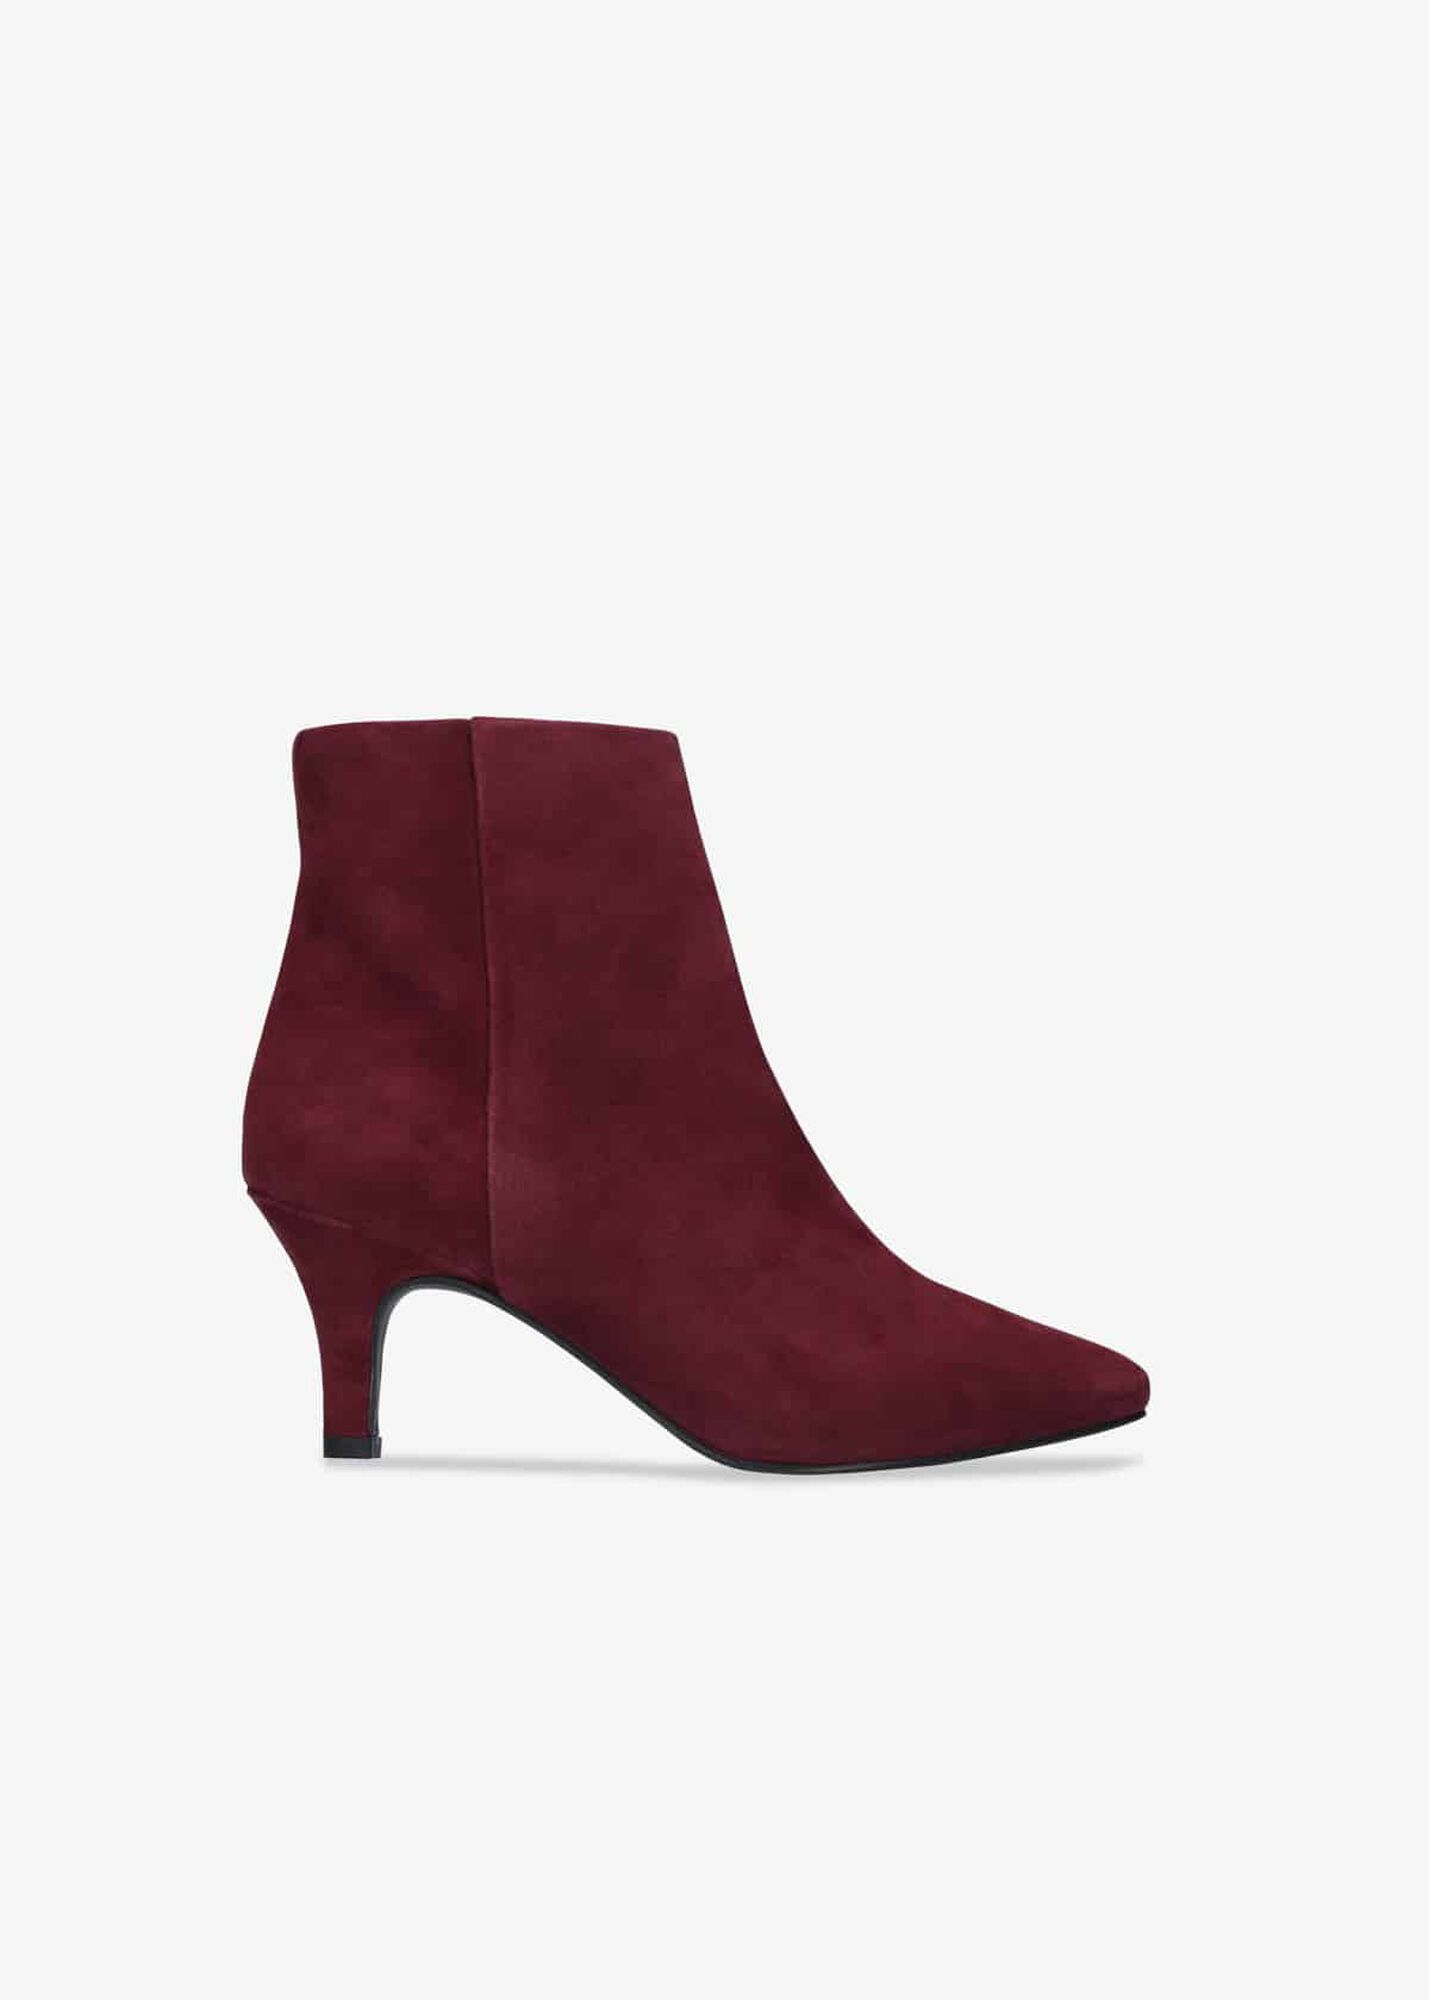 c56f5d7ef36 Romy Ankle Boots